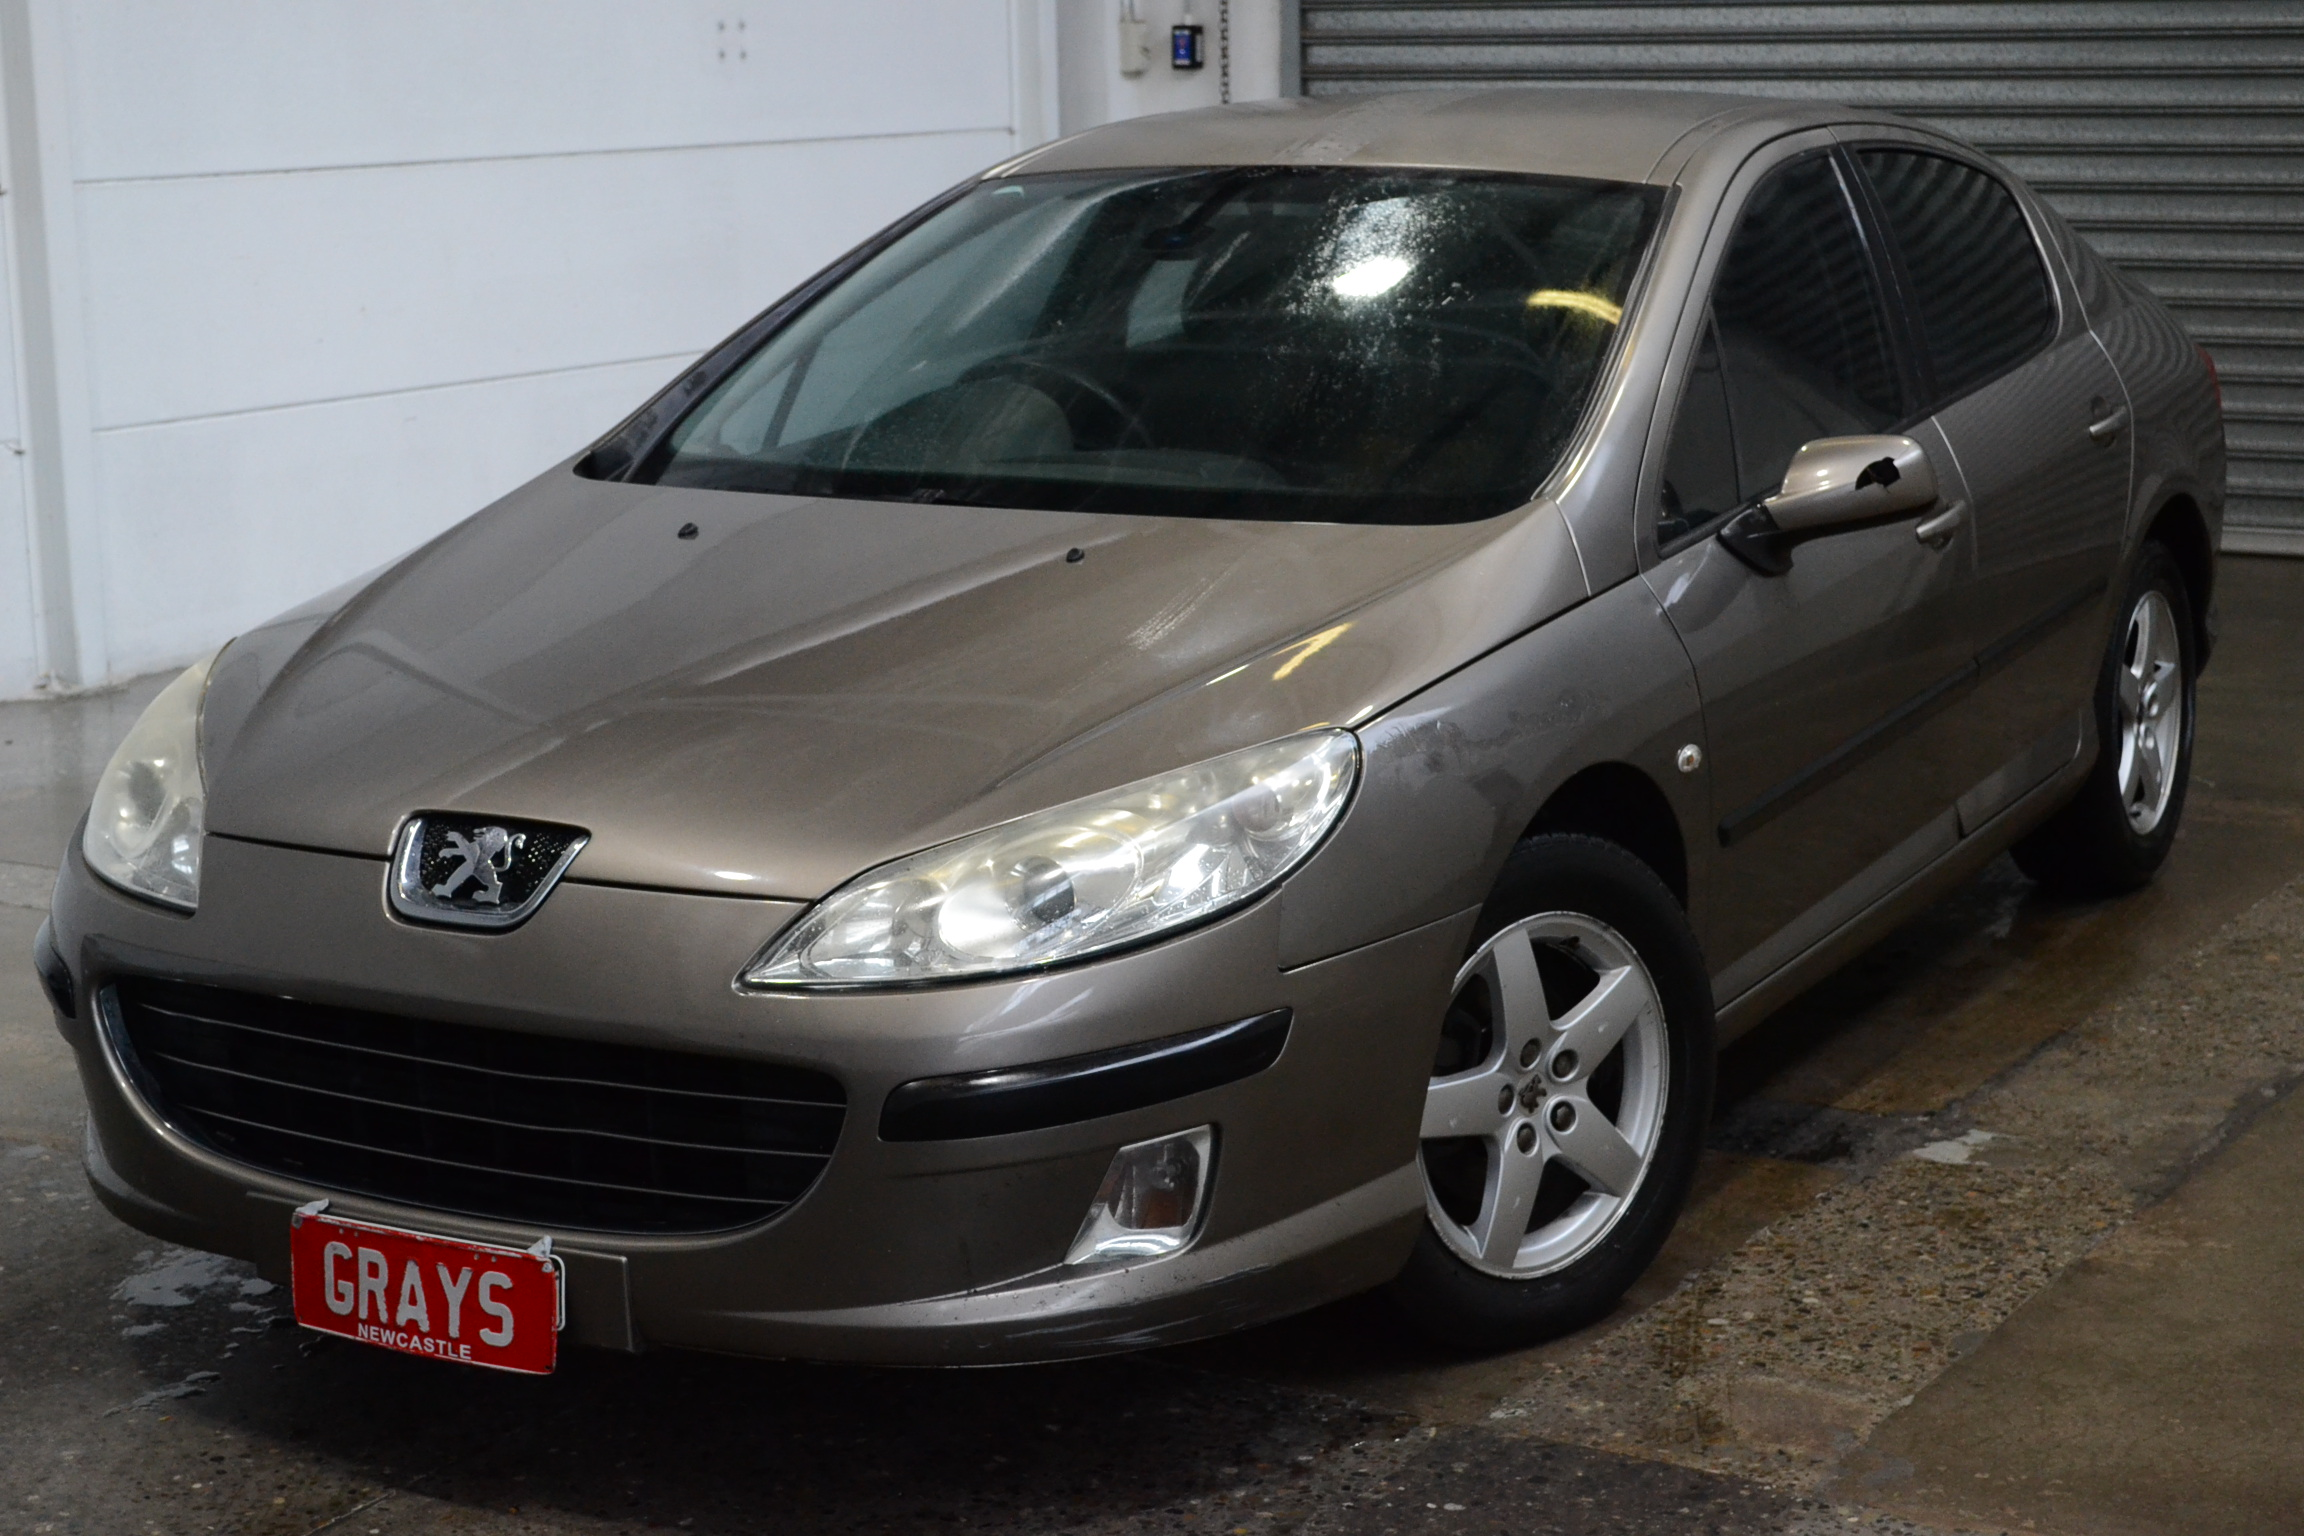 2006 Peugeot 407 SR HDI Comfort Turbo Diesel Manual Sedan